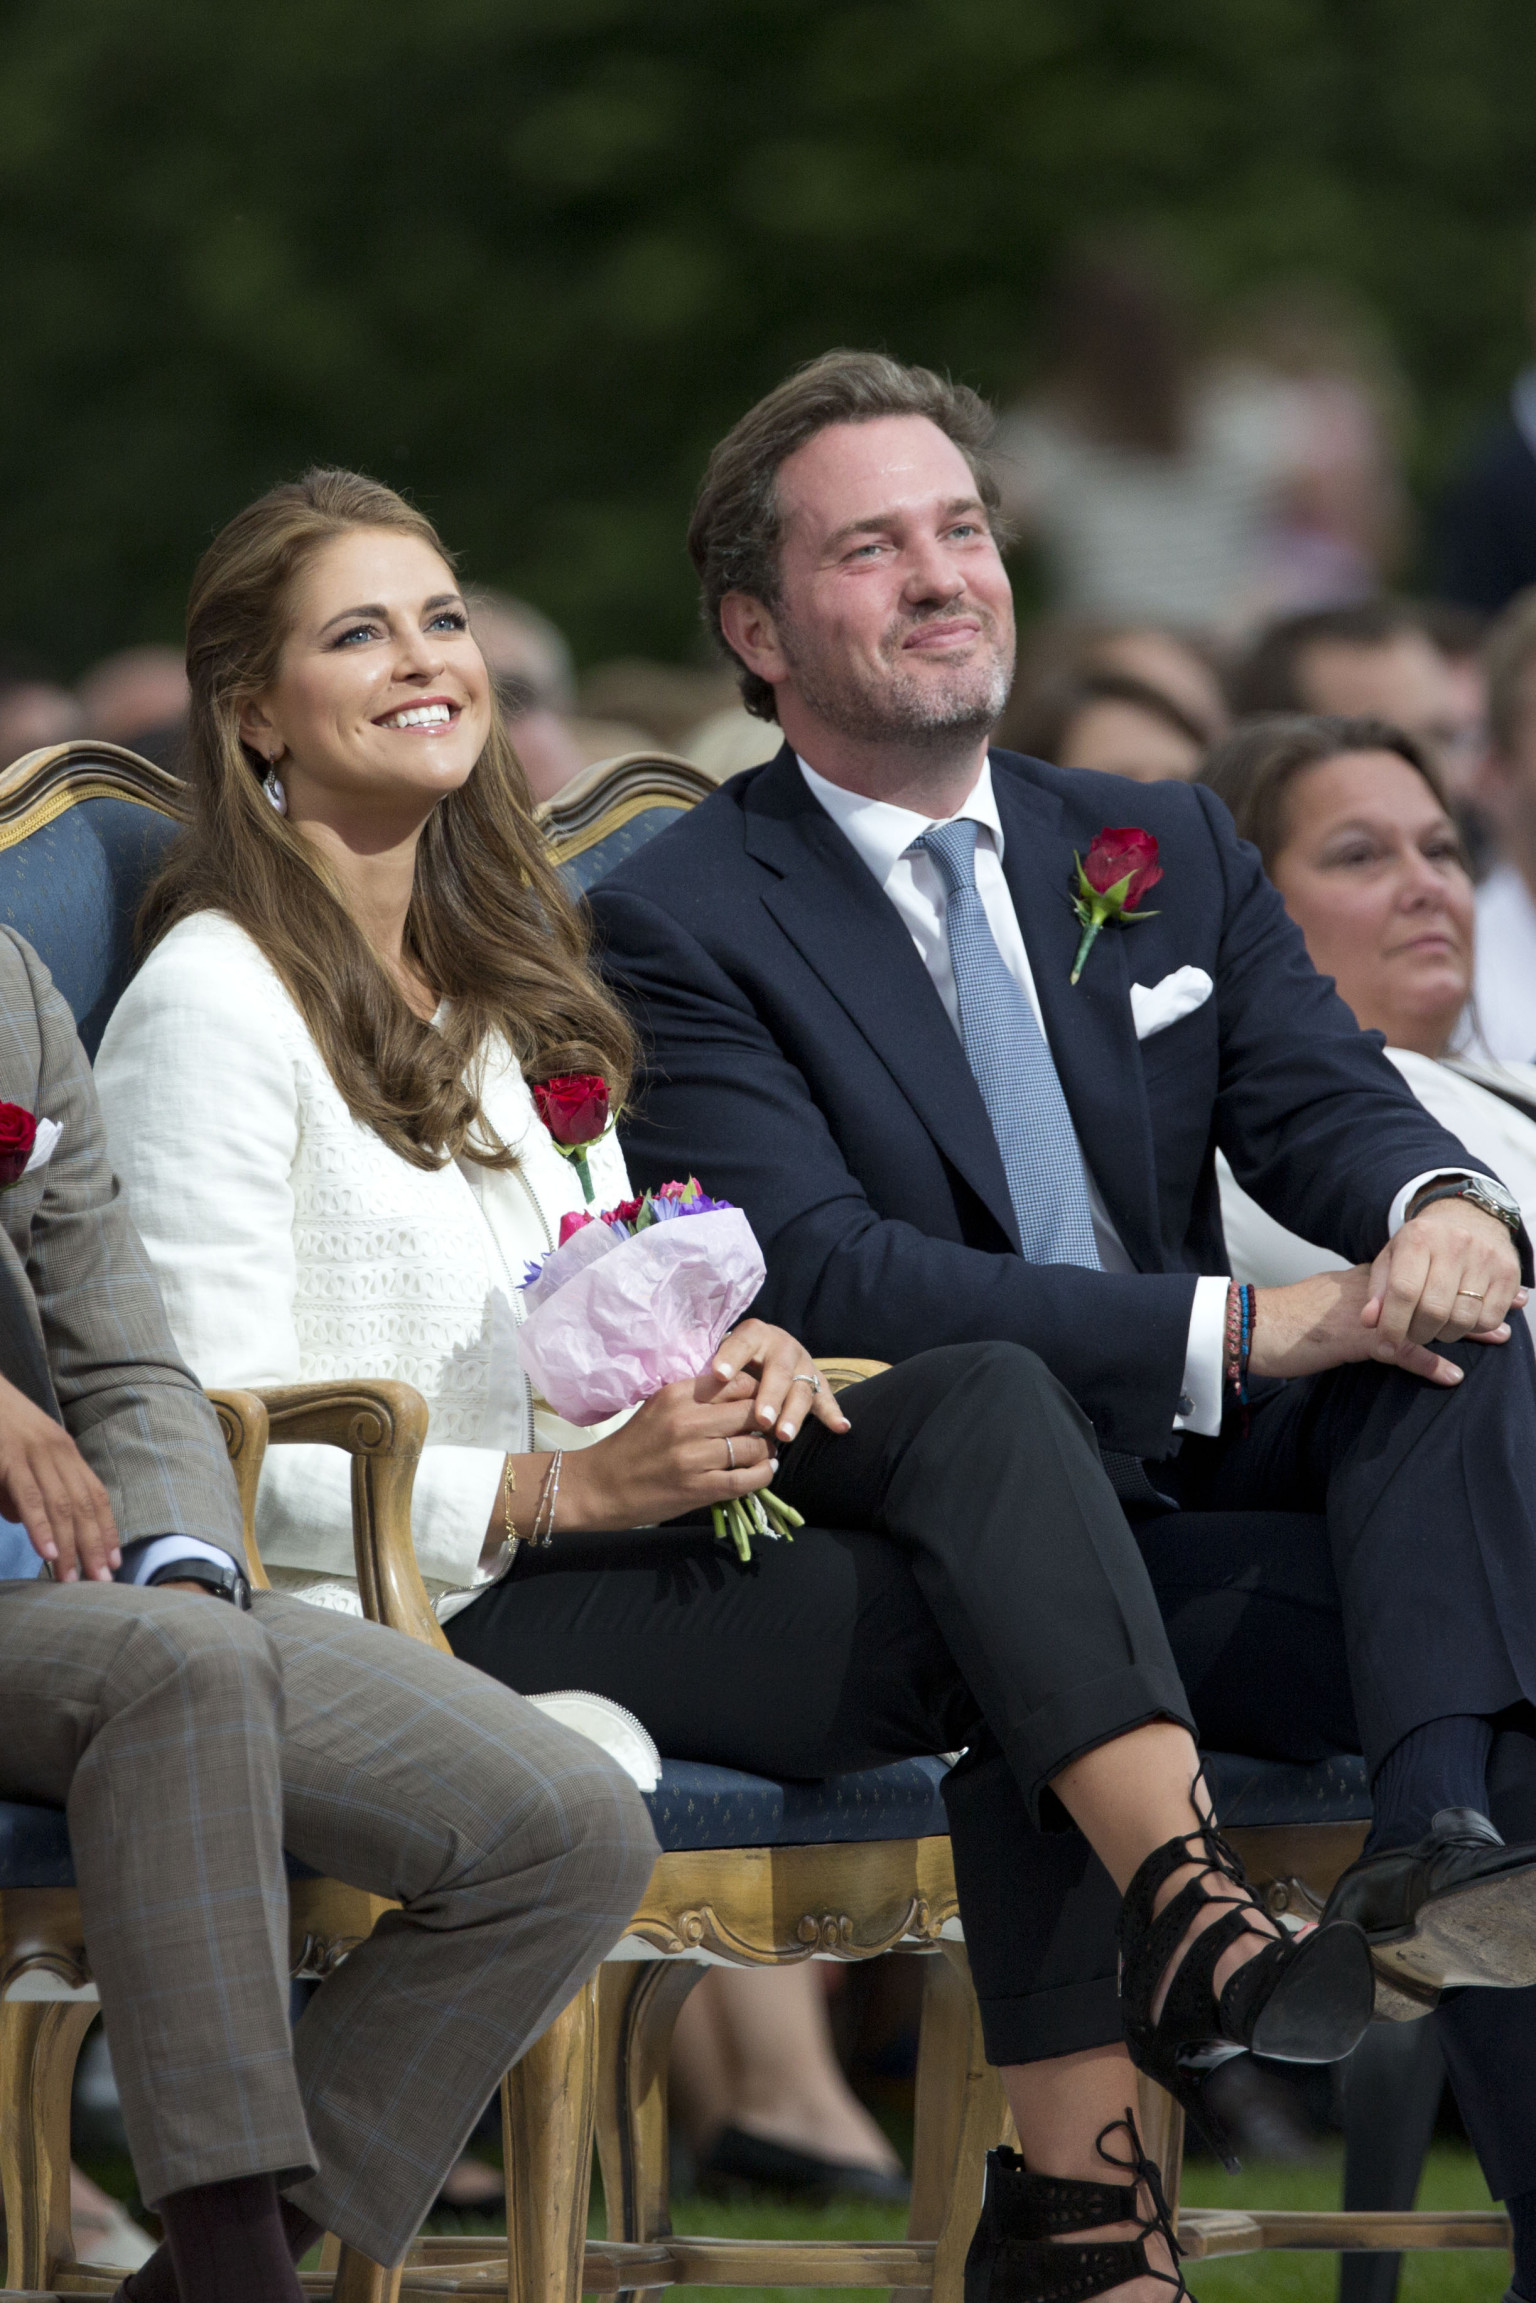 Princess Madeleine Pregnant With First Child 12 Weeks ...